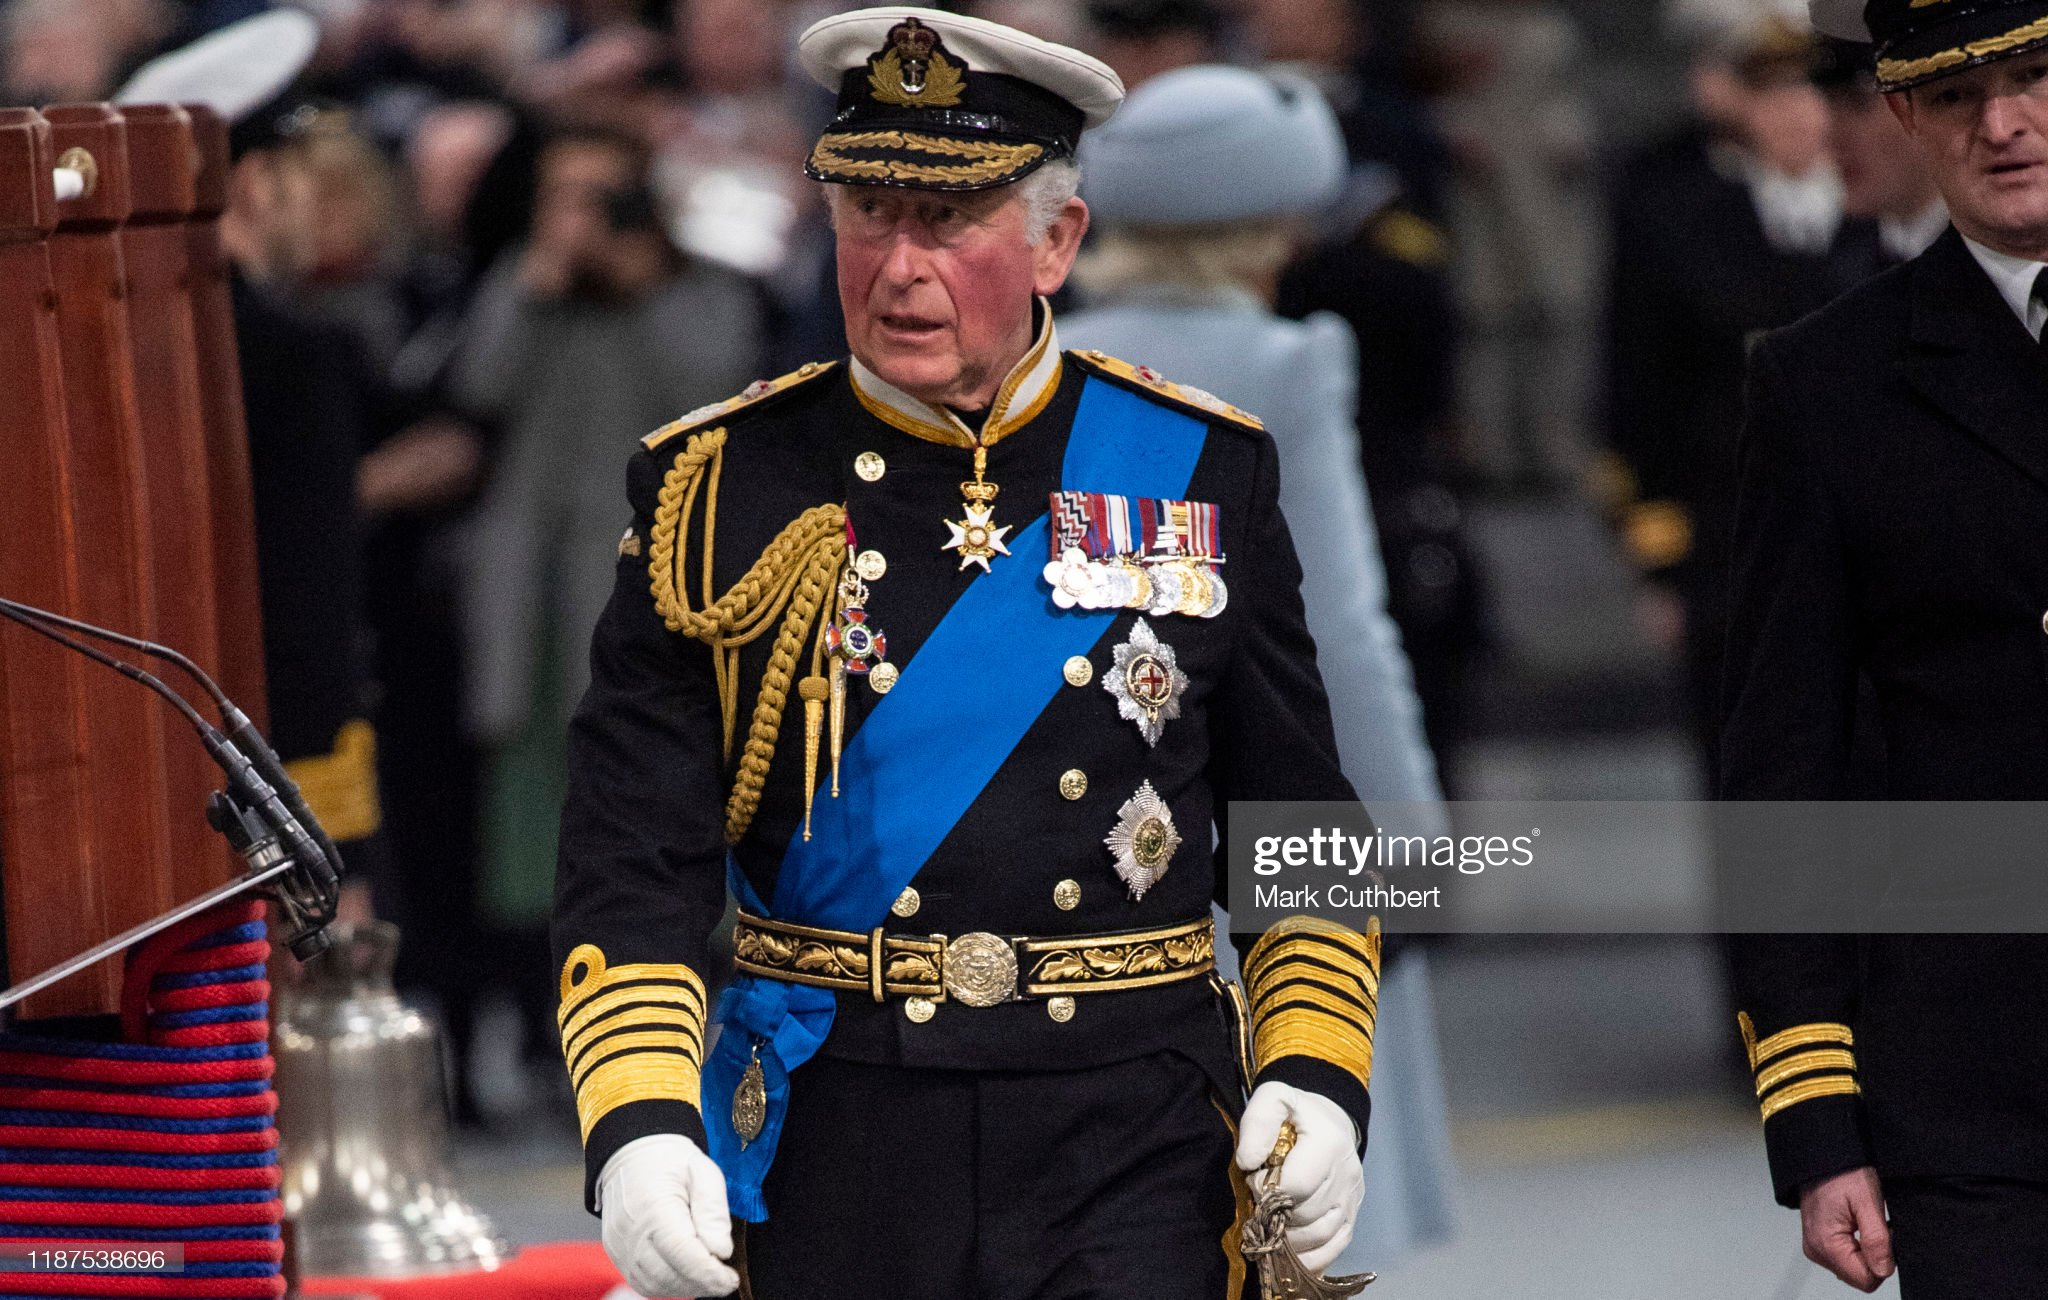 prince-charles-prince-of-wales-attends-the-official-commissioning-of-picture-id1187538696